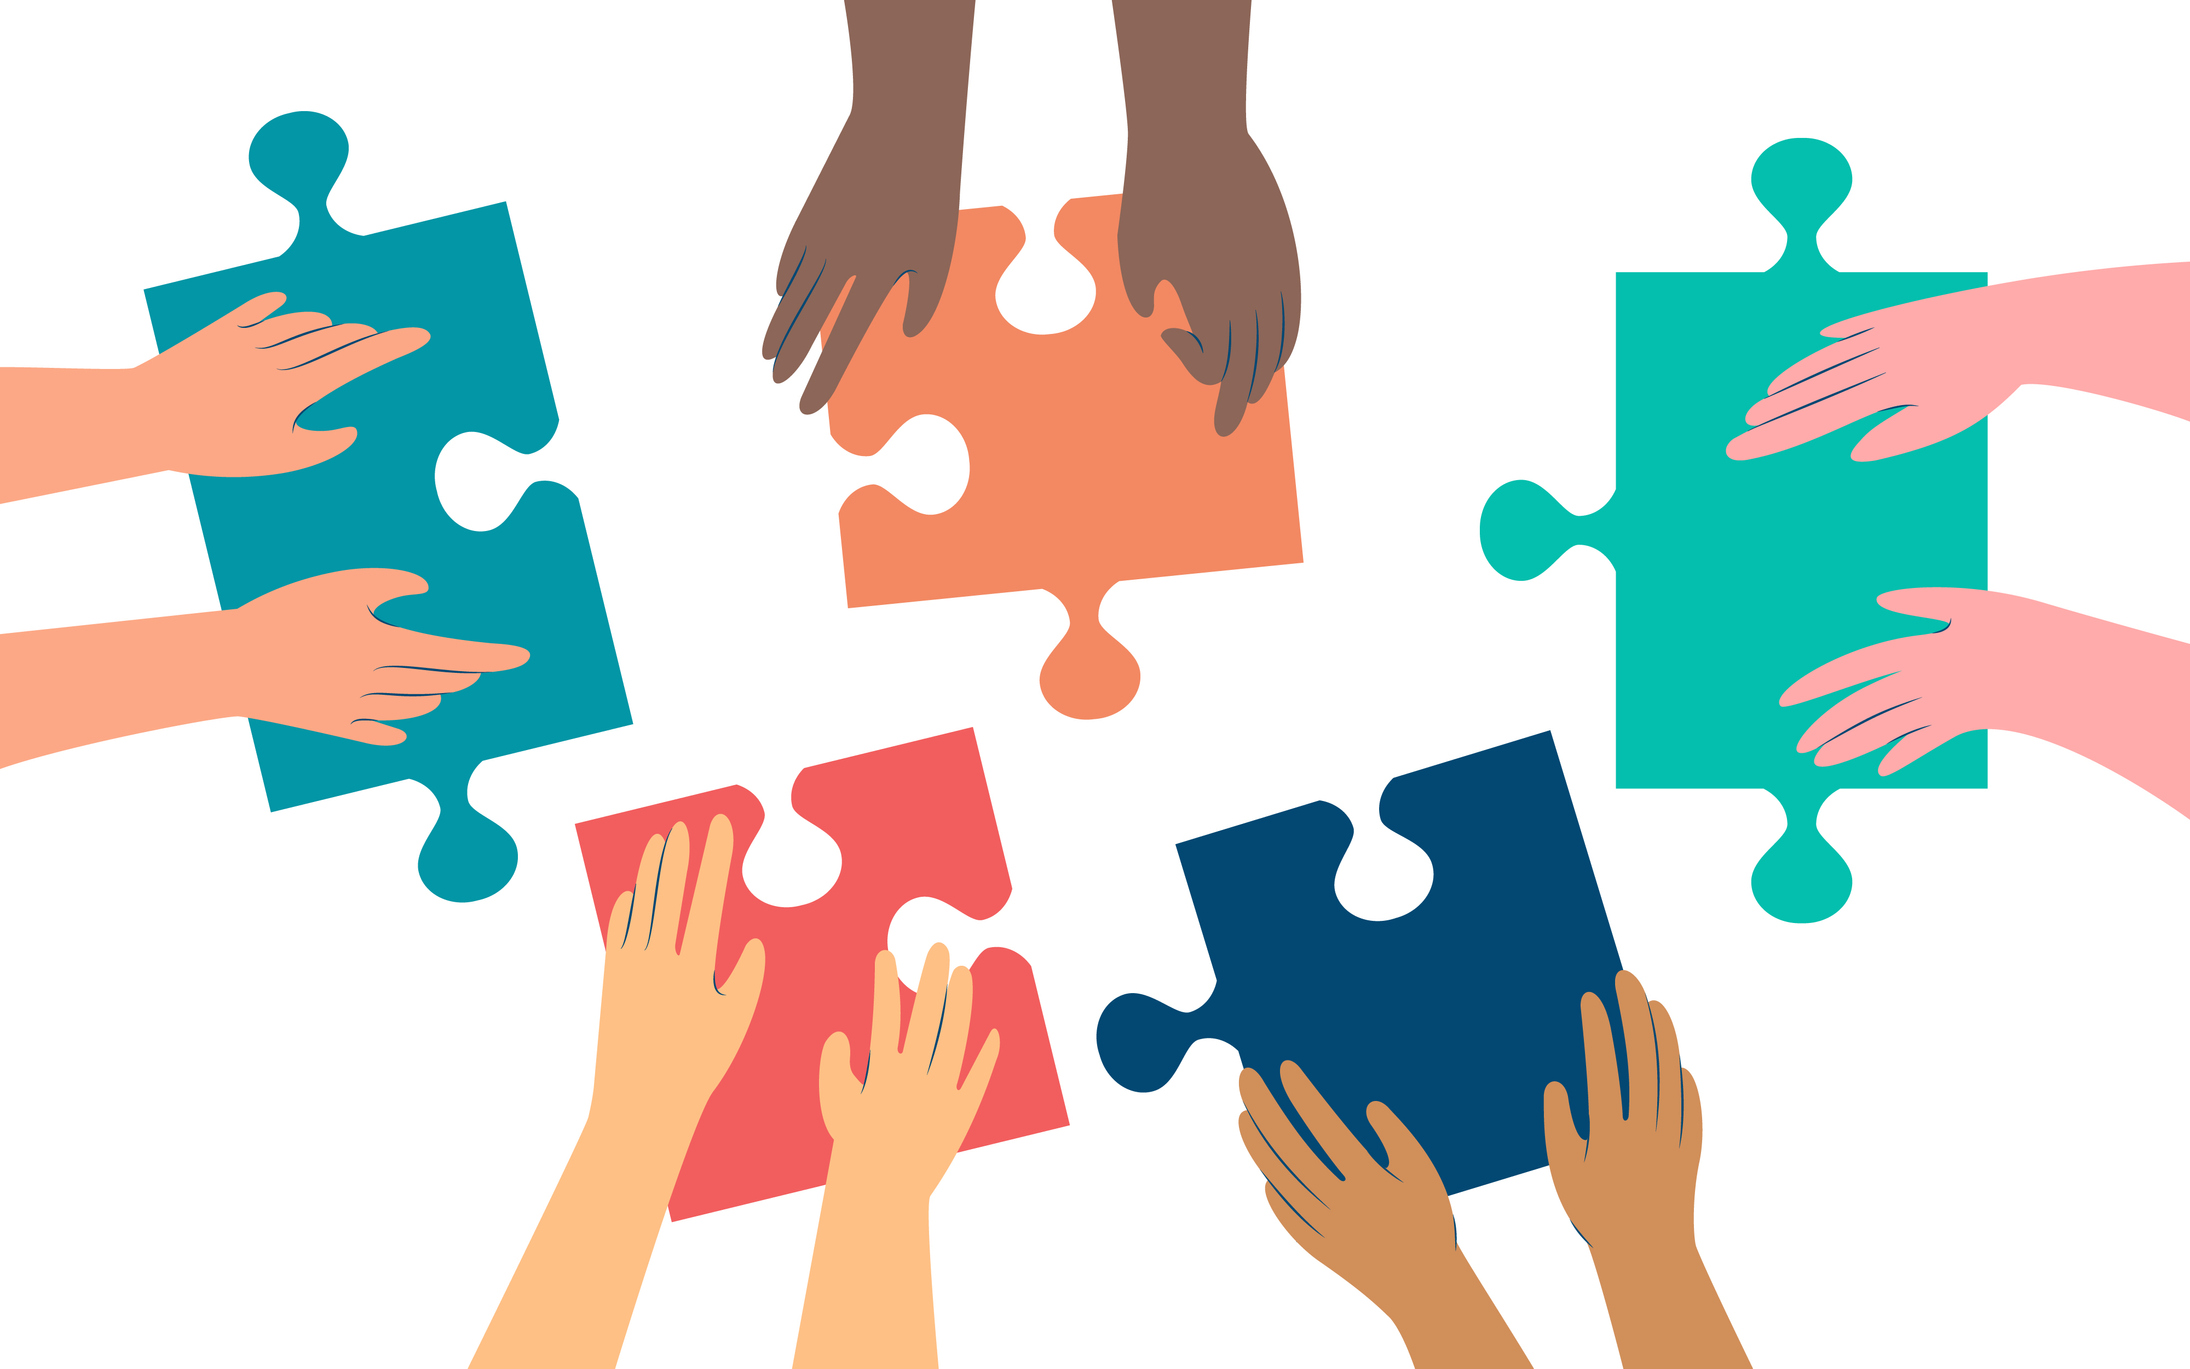 Five pairs of hands of diffirent skin colors moving in puzzle pieces. Working together to solve a problem. Flat style illustration, isolated on white background, top view.